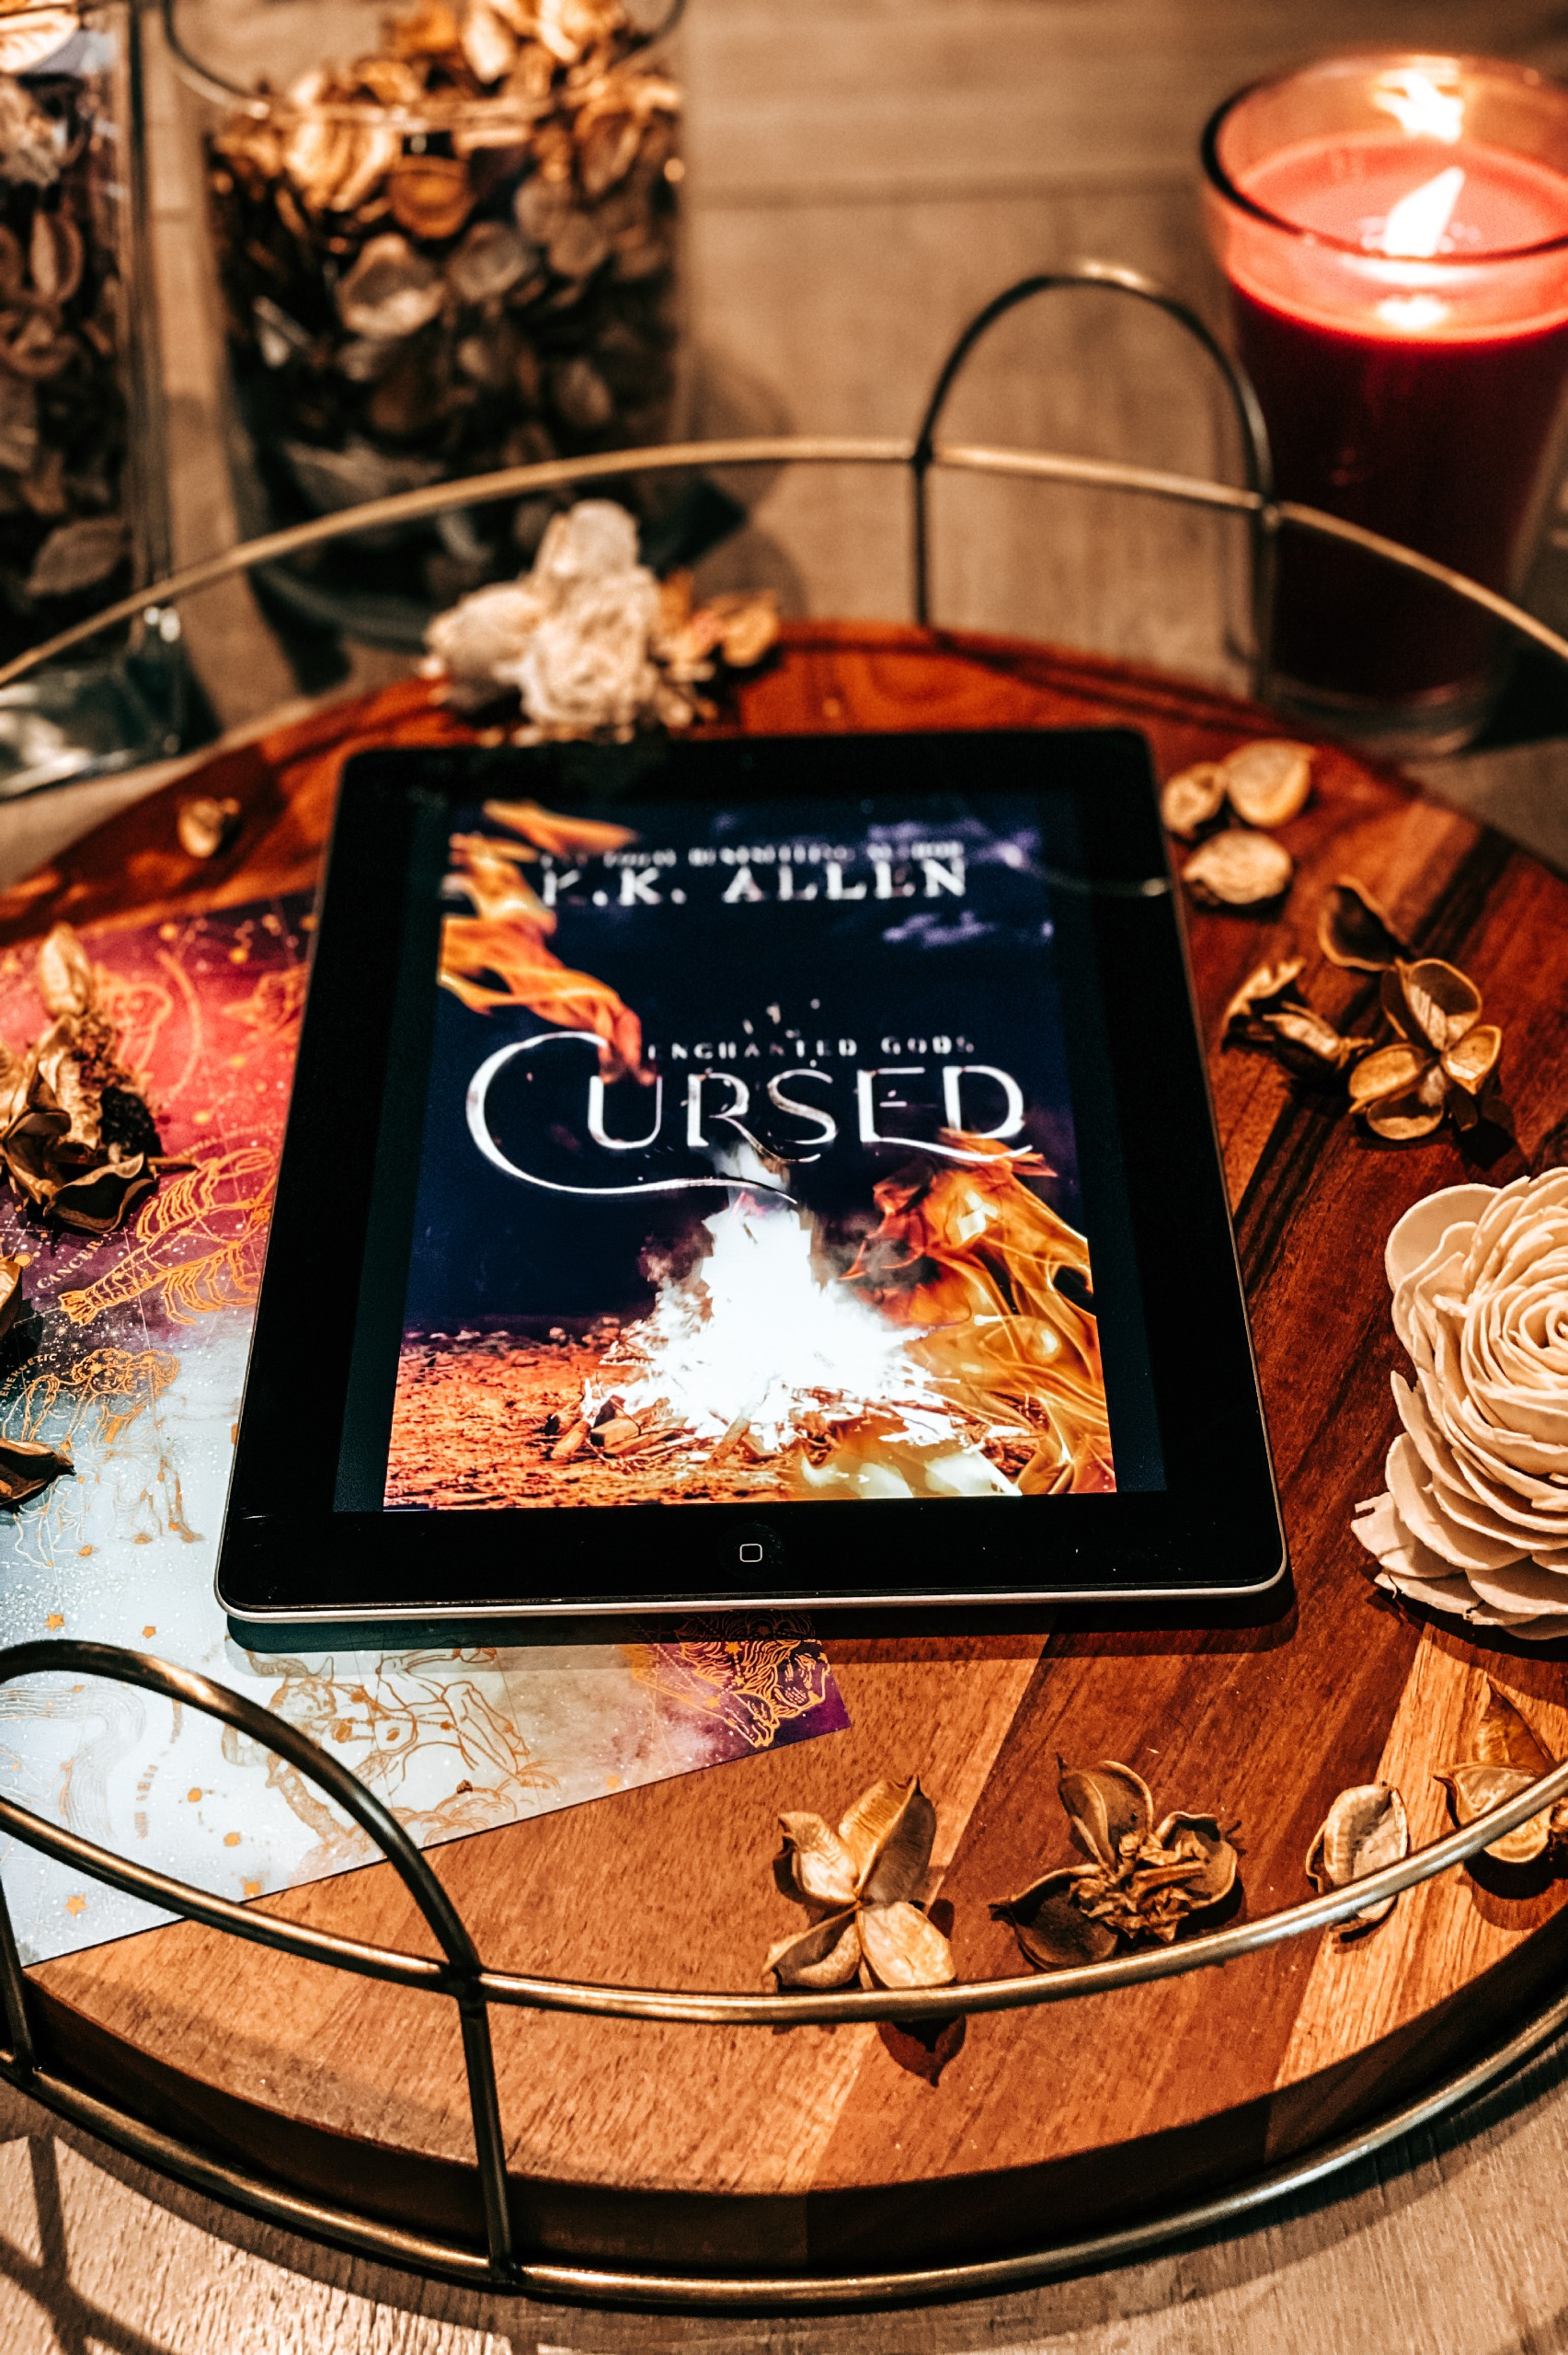 Cursed Review at Wickedly Romance